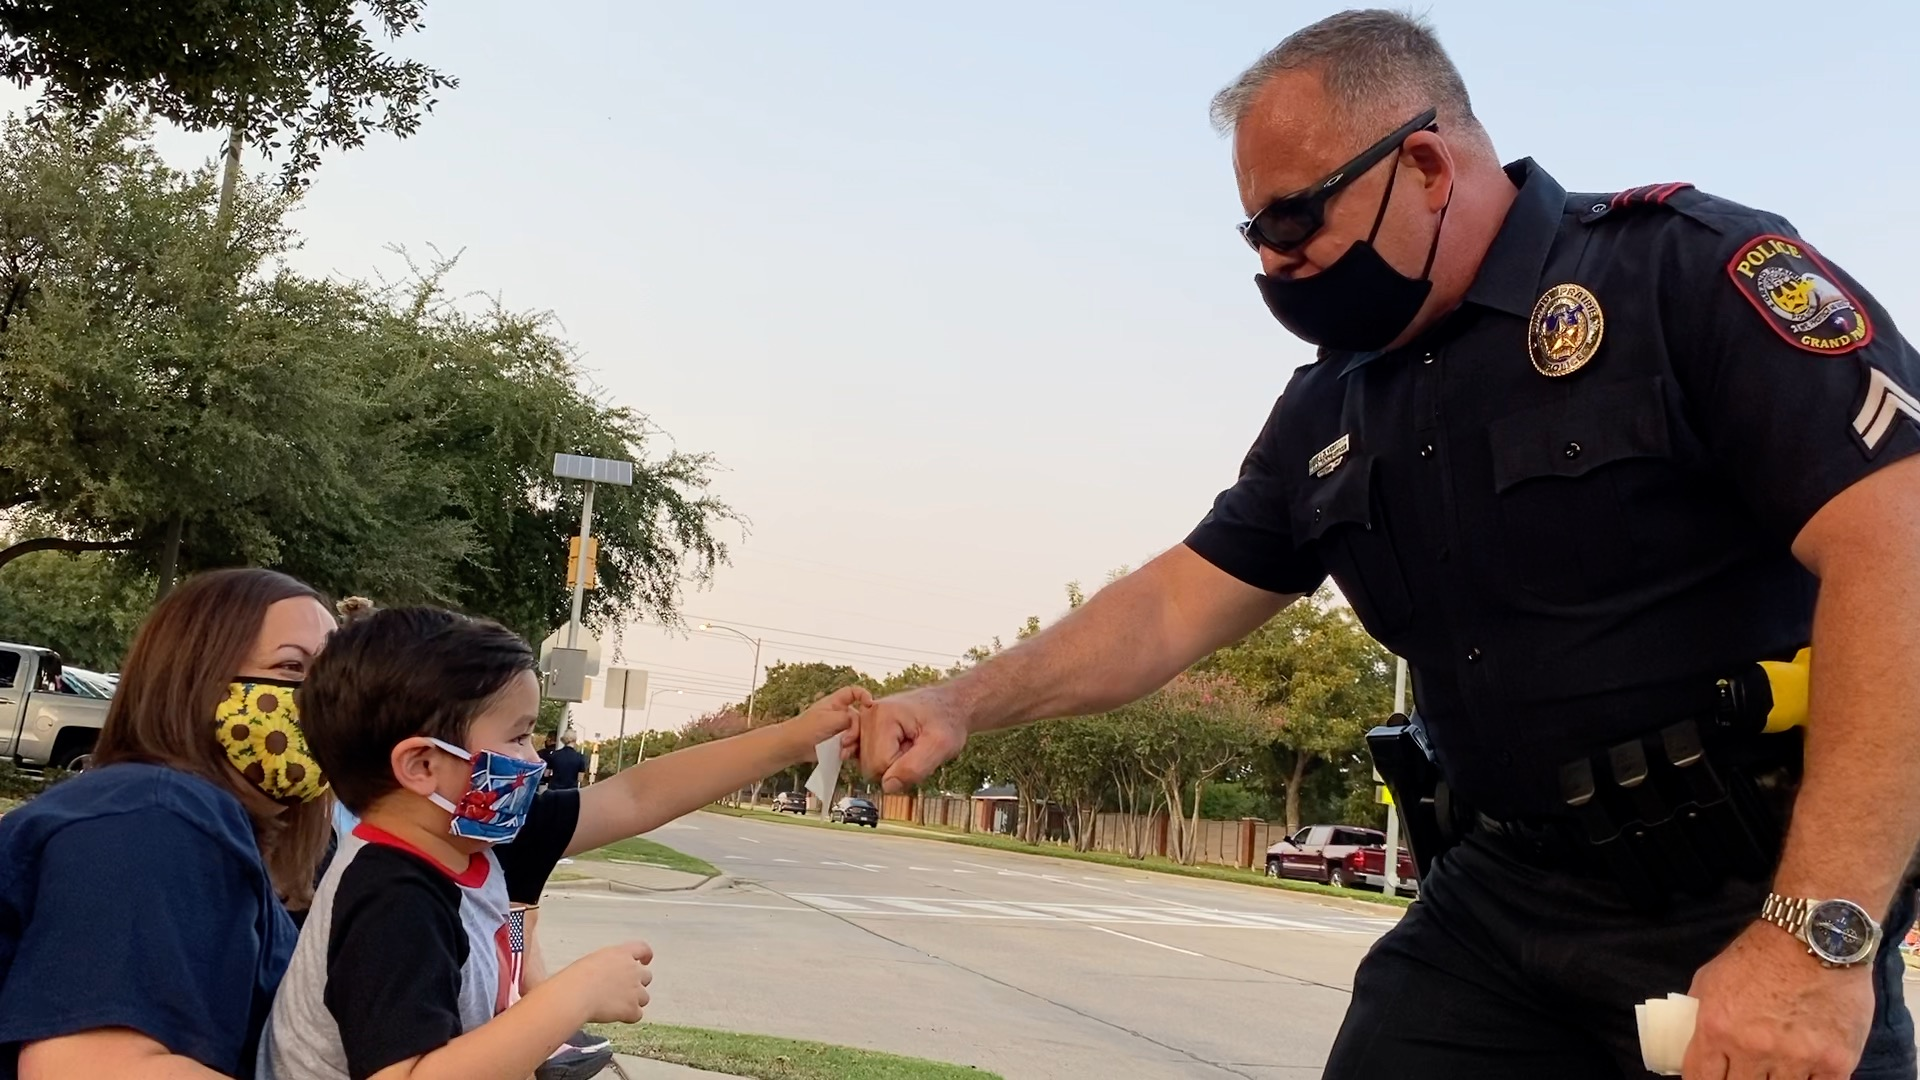 Officer Jim West of the Grand Prairie Police Department waves to residents (Lupe Zapata/Spectrum News)